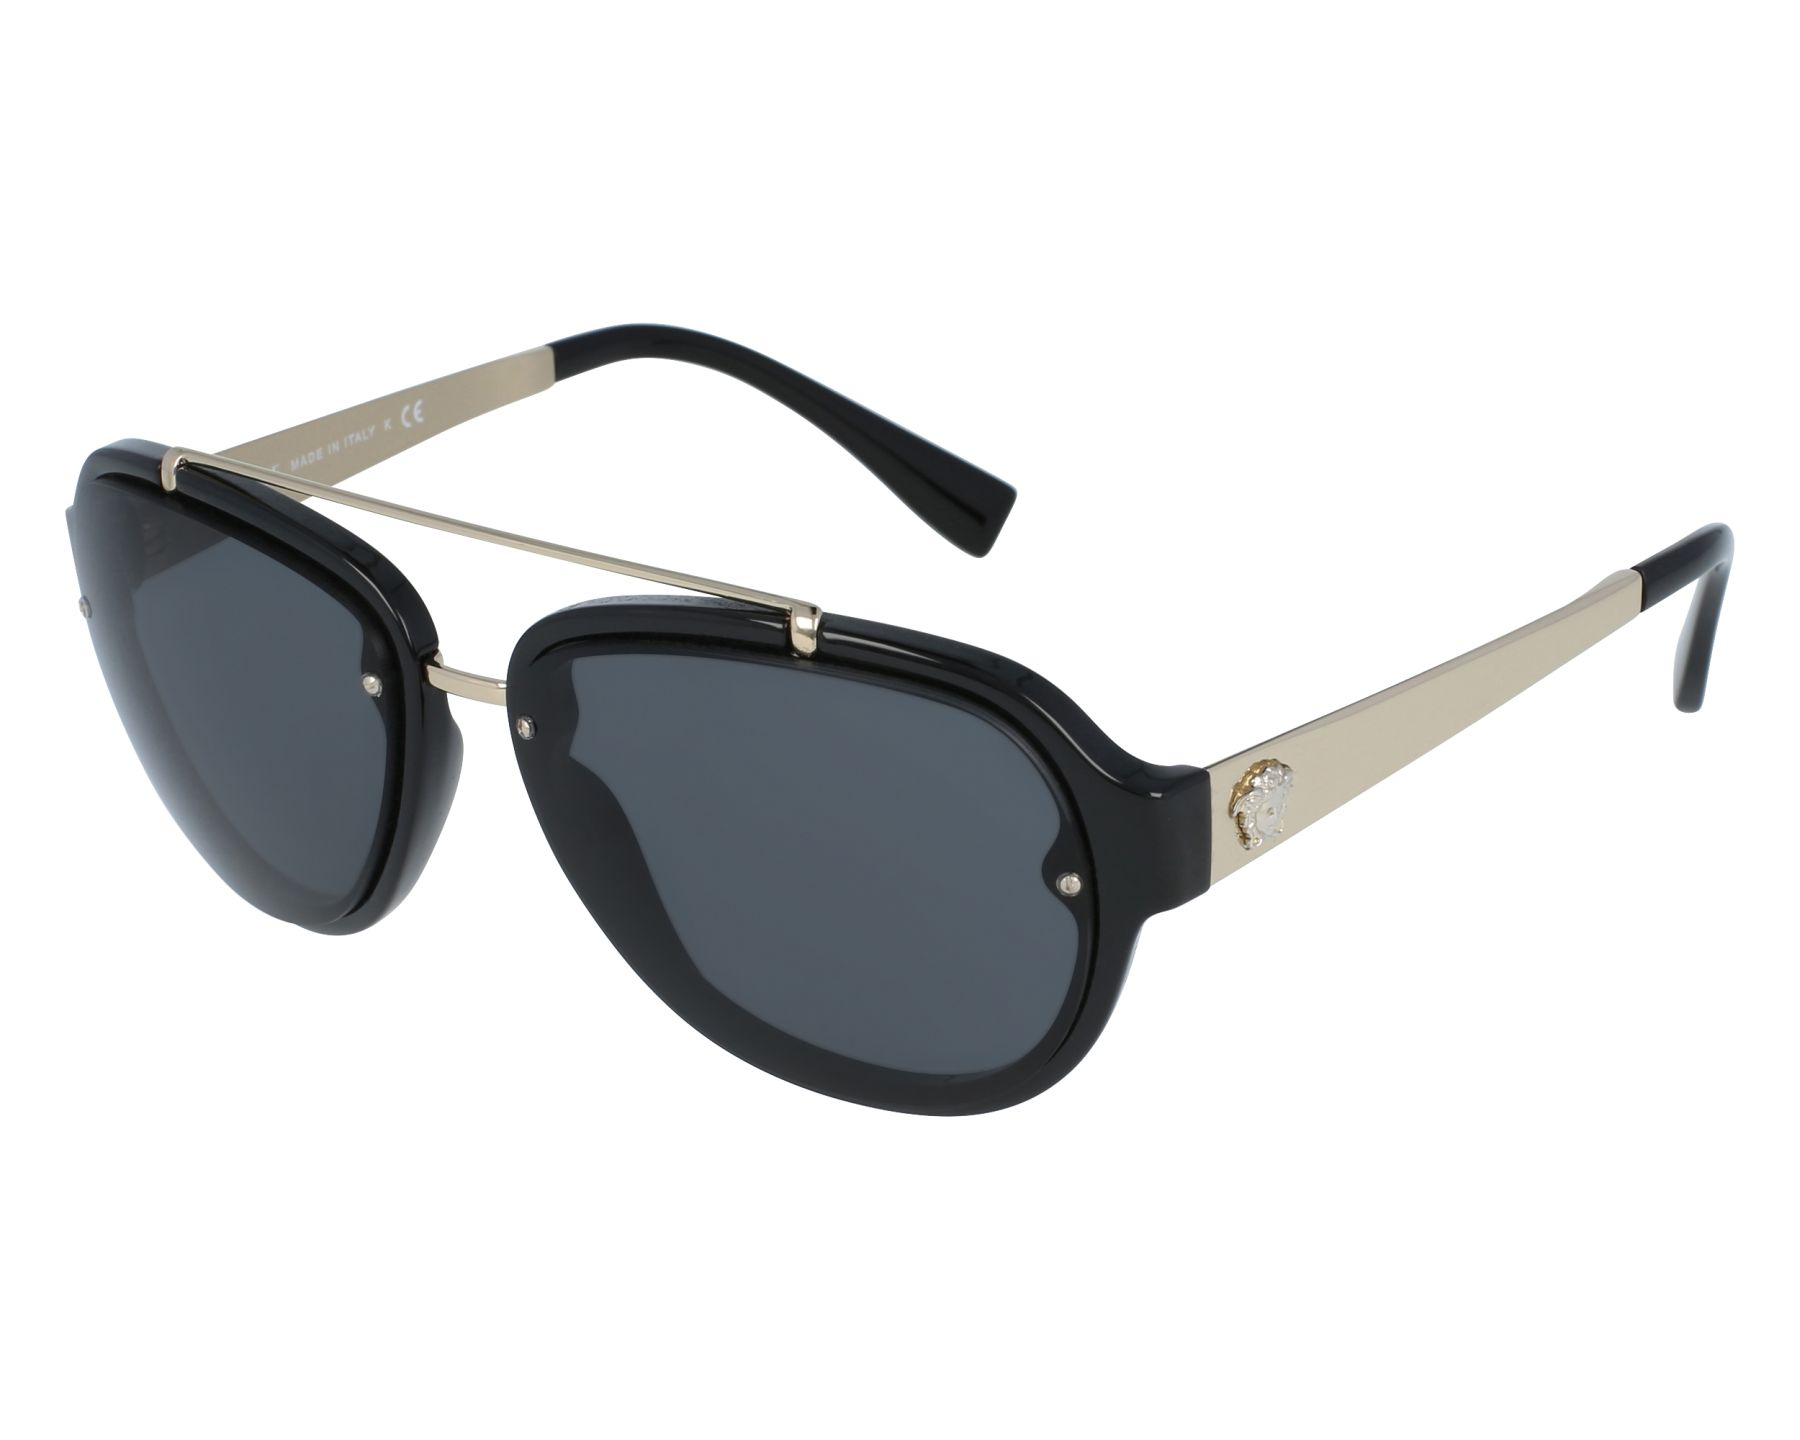 d6041dade385 Sunglasses Versace VE-4327 GB1 87 57-16 Black Gold front view